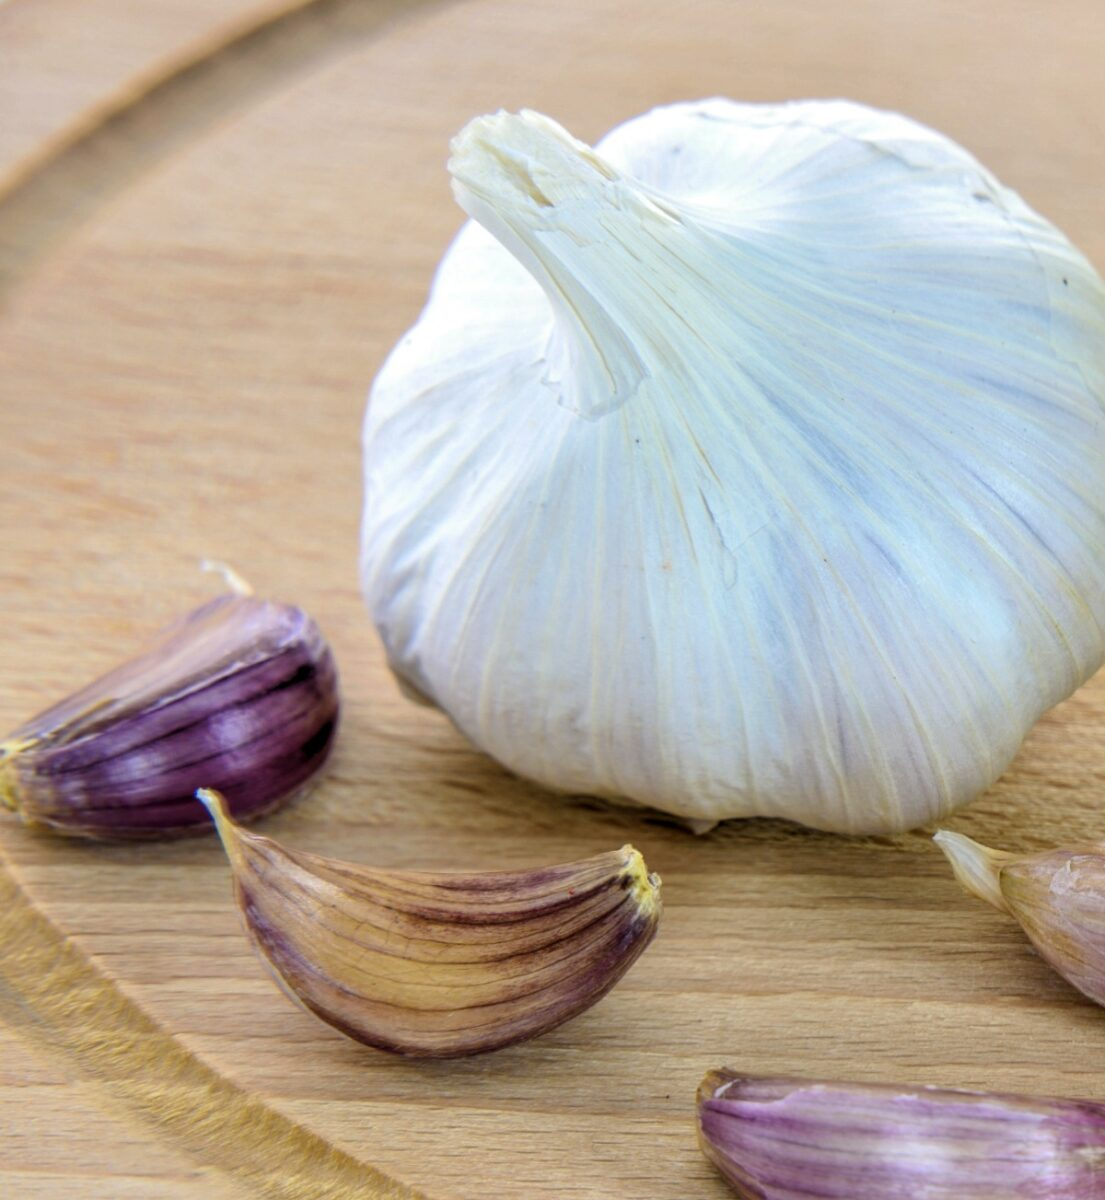 Garlic Vinaigrette Recipe